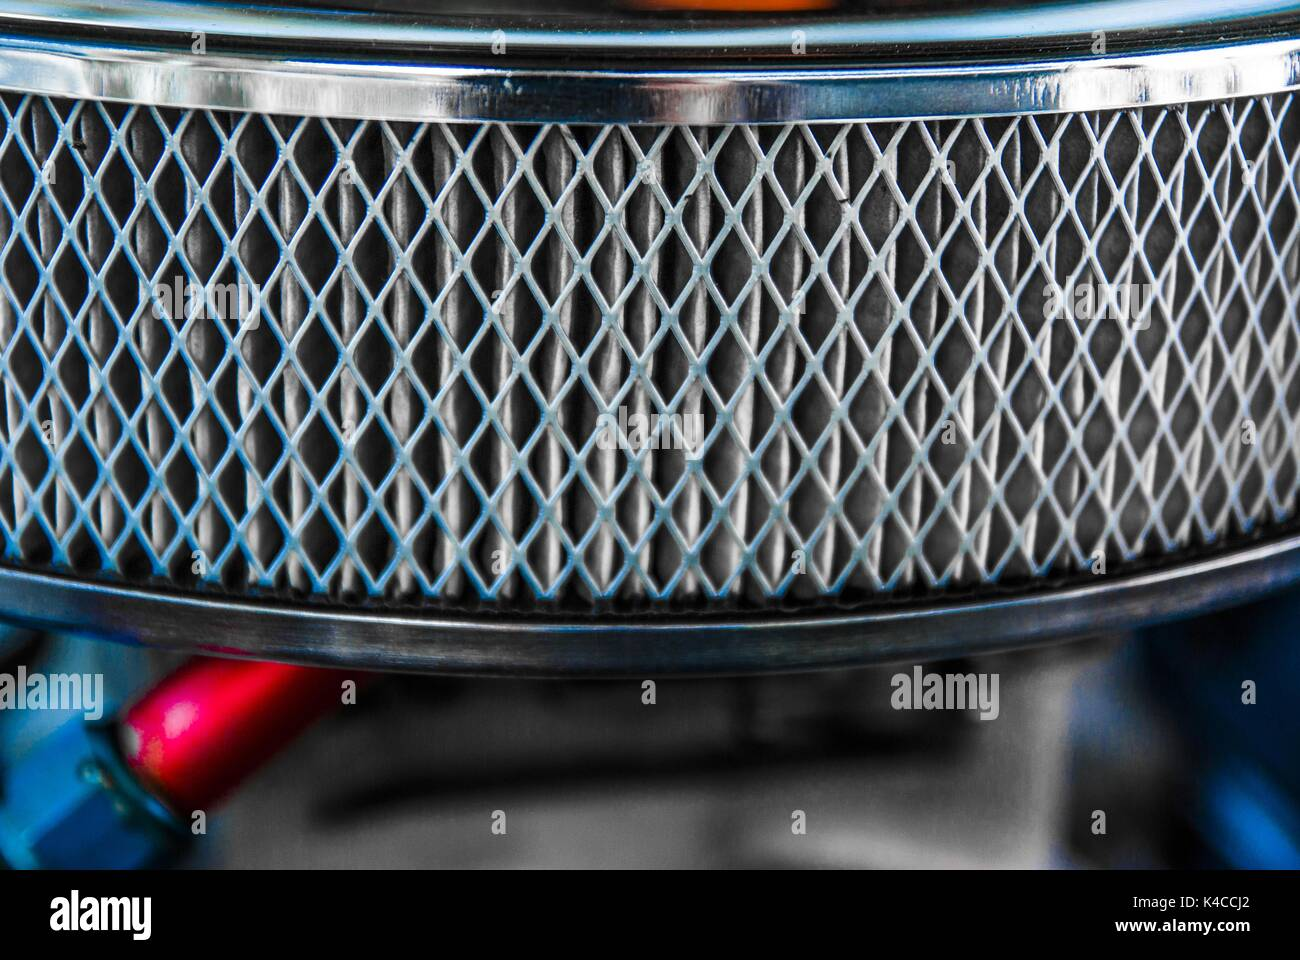 Chromed Air Filters - Stock Image